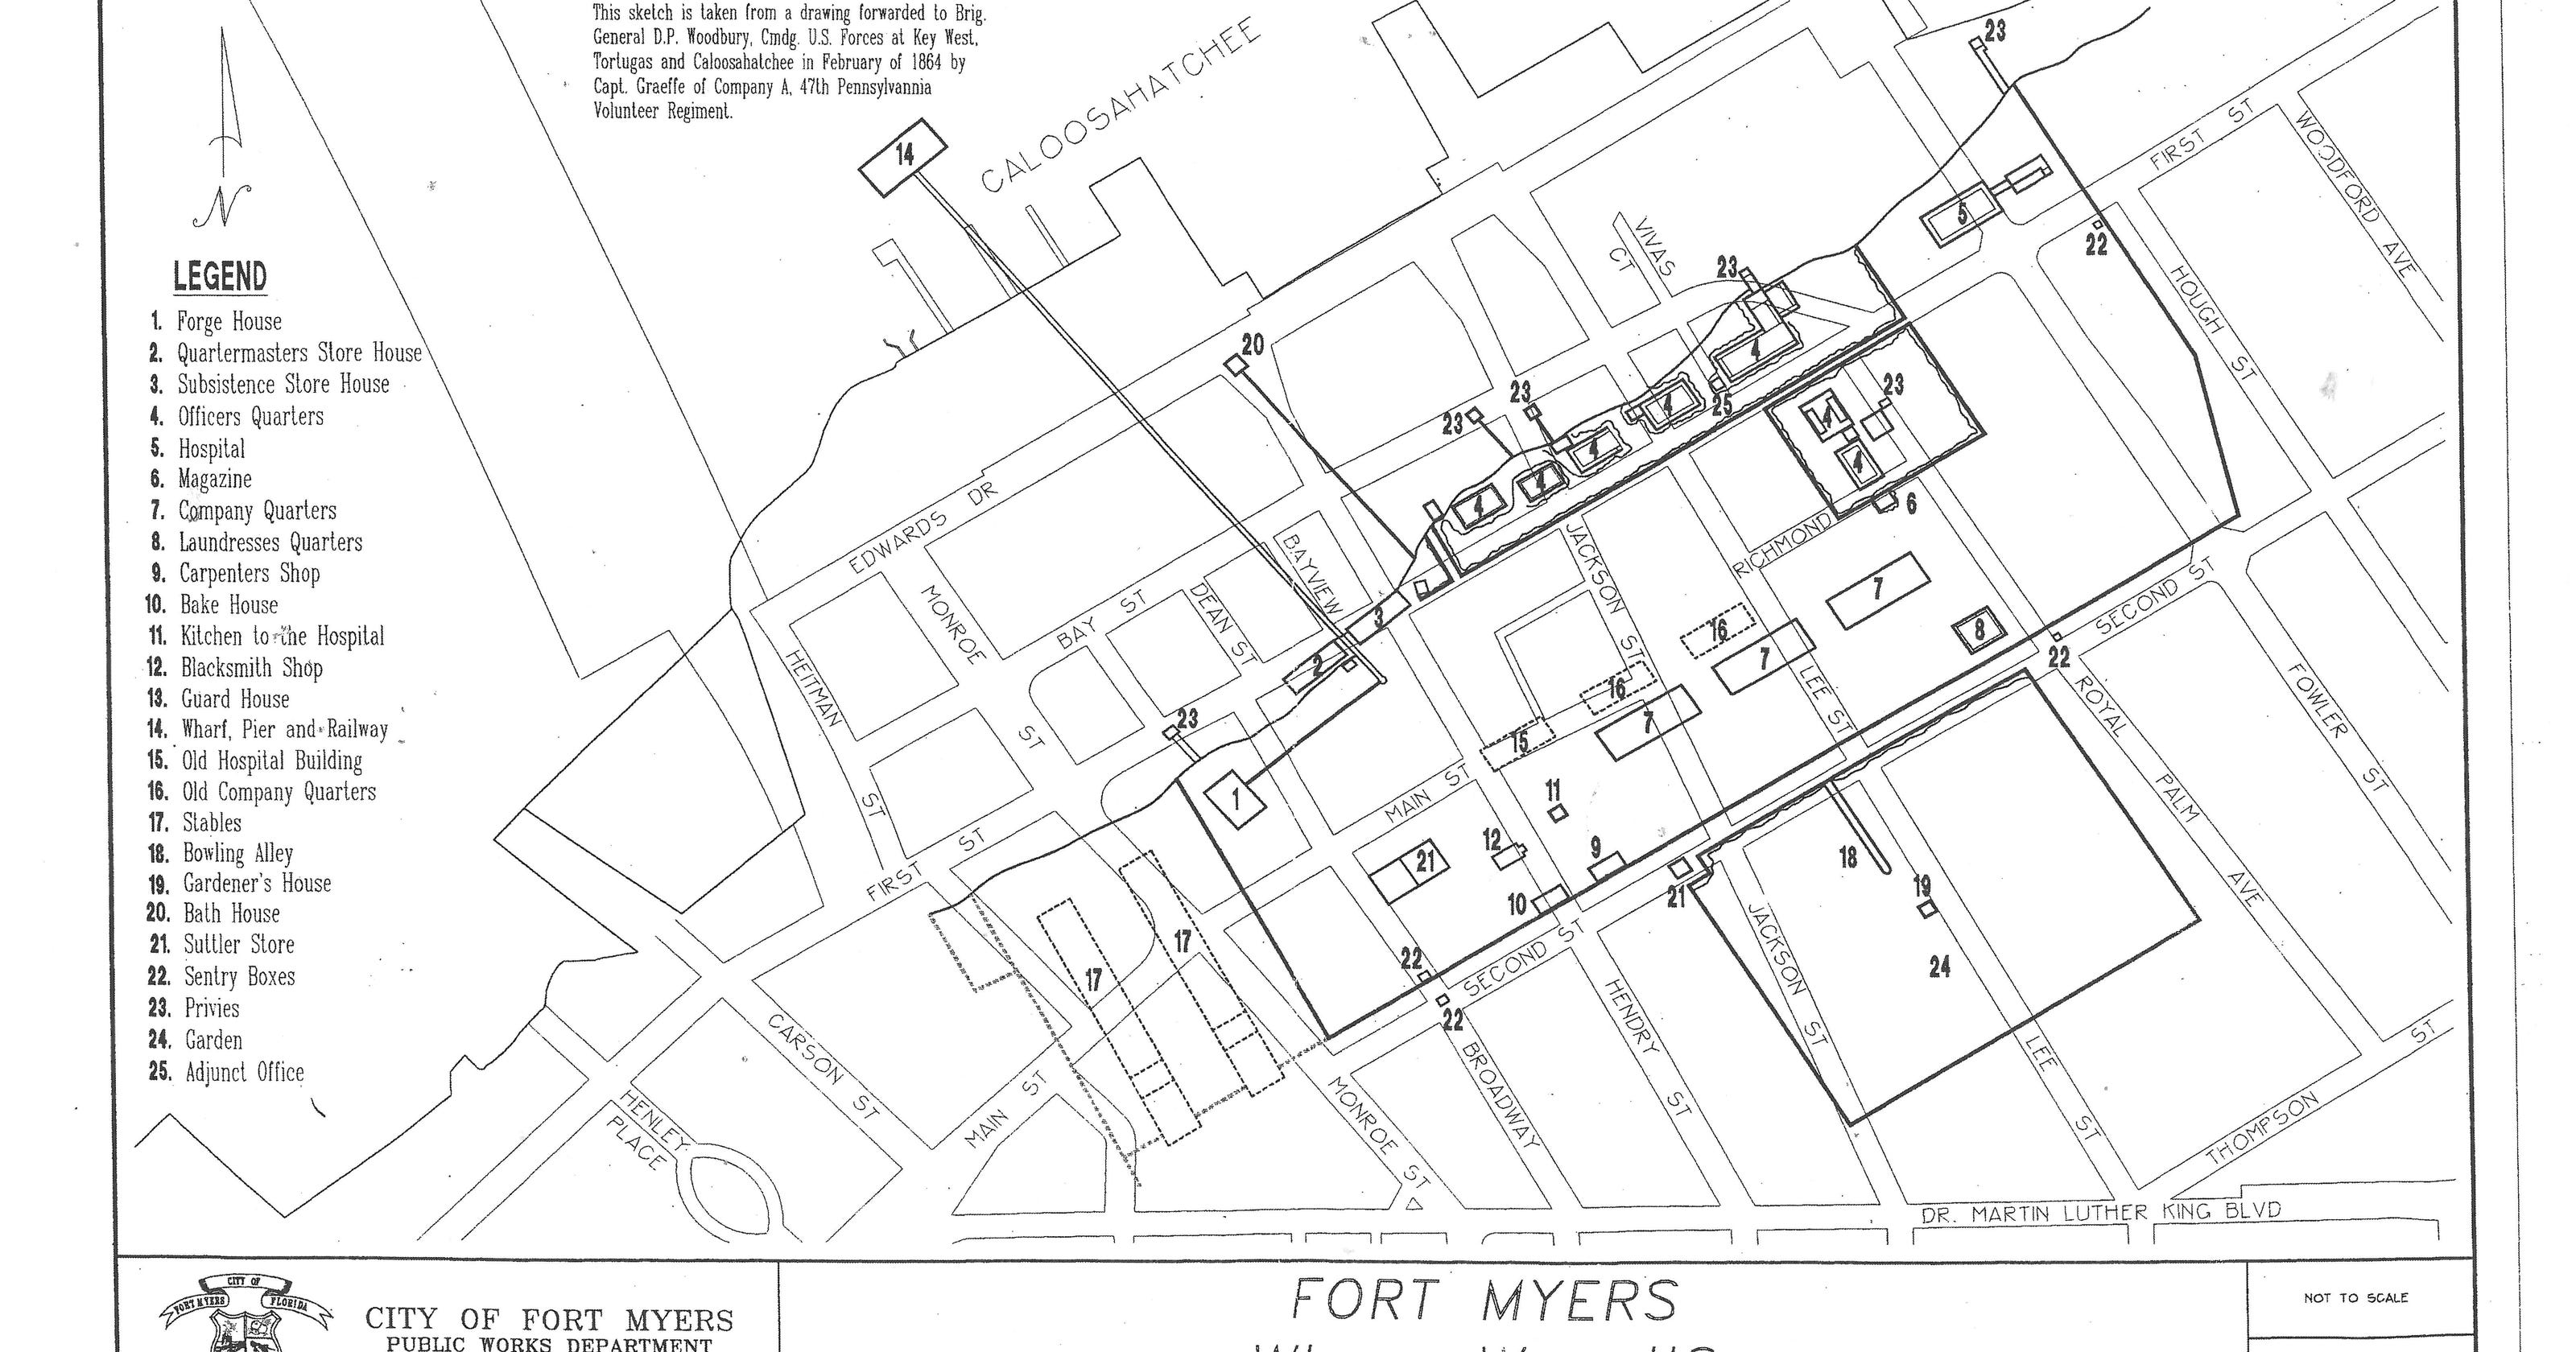 Battle of Fort Myers was significant